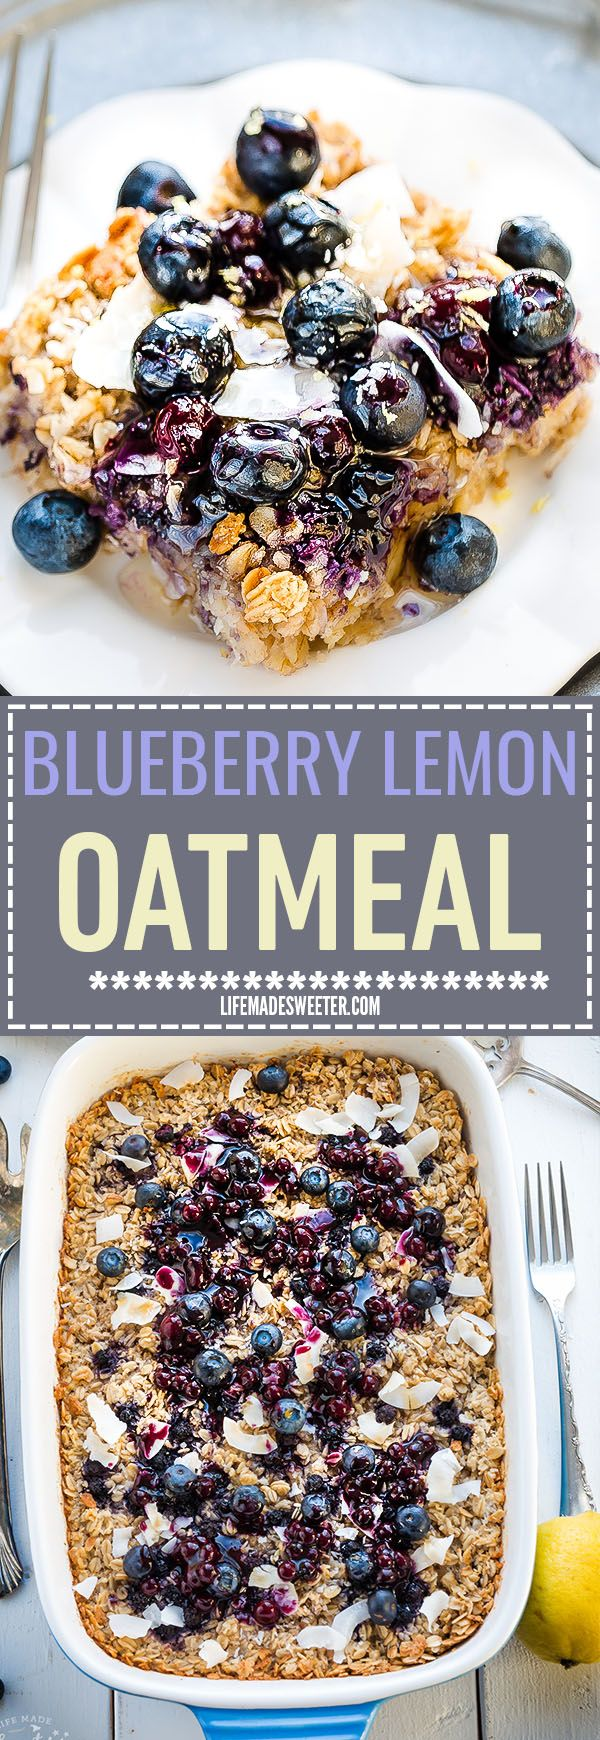 Blueberry Lemon Coconut Baked Oatmeal is easy to assemble and makes the perfect healthy and hearty gluten free breakfast that tastes like dessert. Best of all, it's dairy free and made with NO butter  (Breakfast Oatmeal)